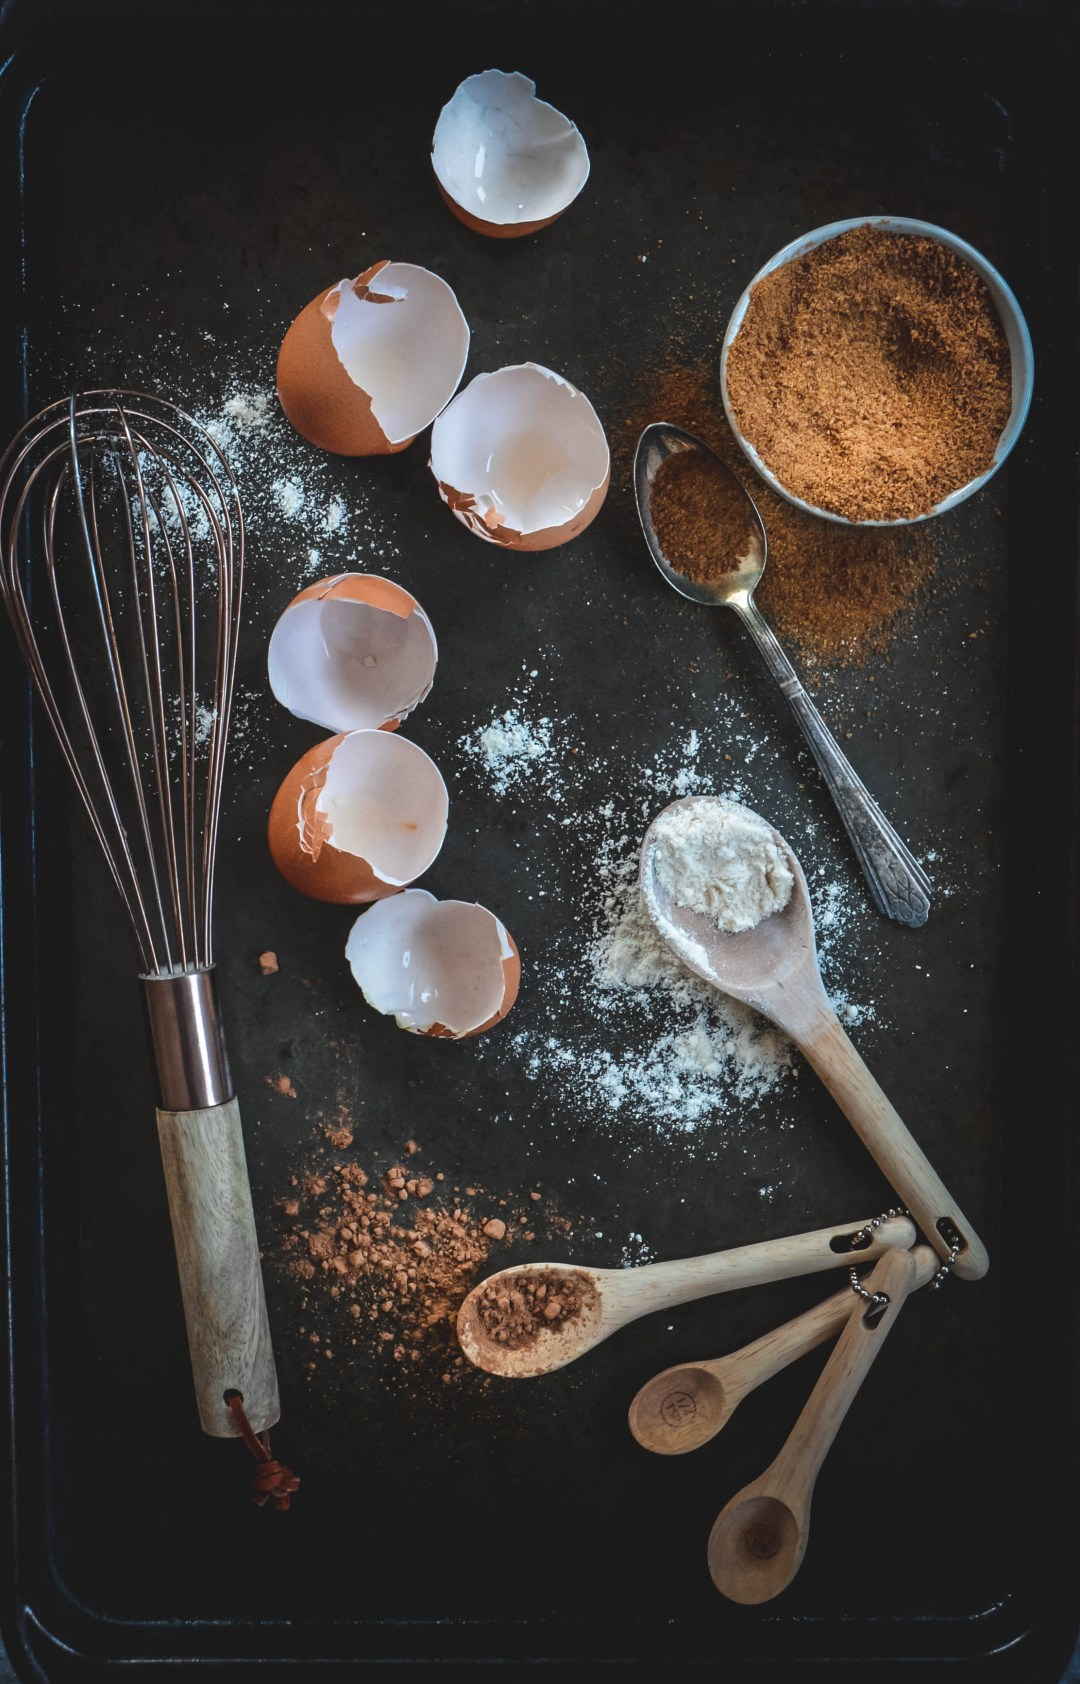 egg shells, whisk and cacao on spoons